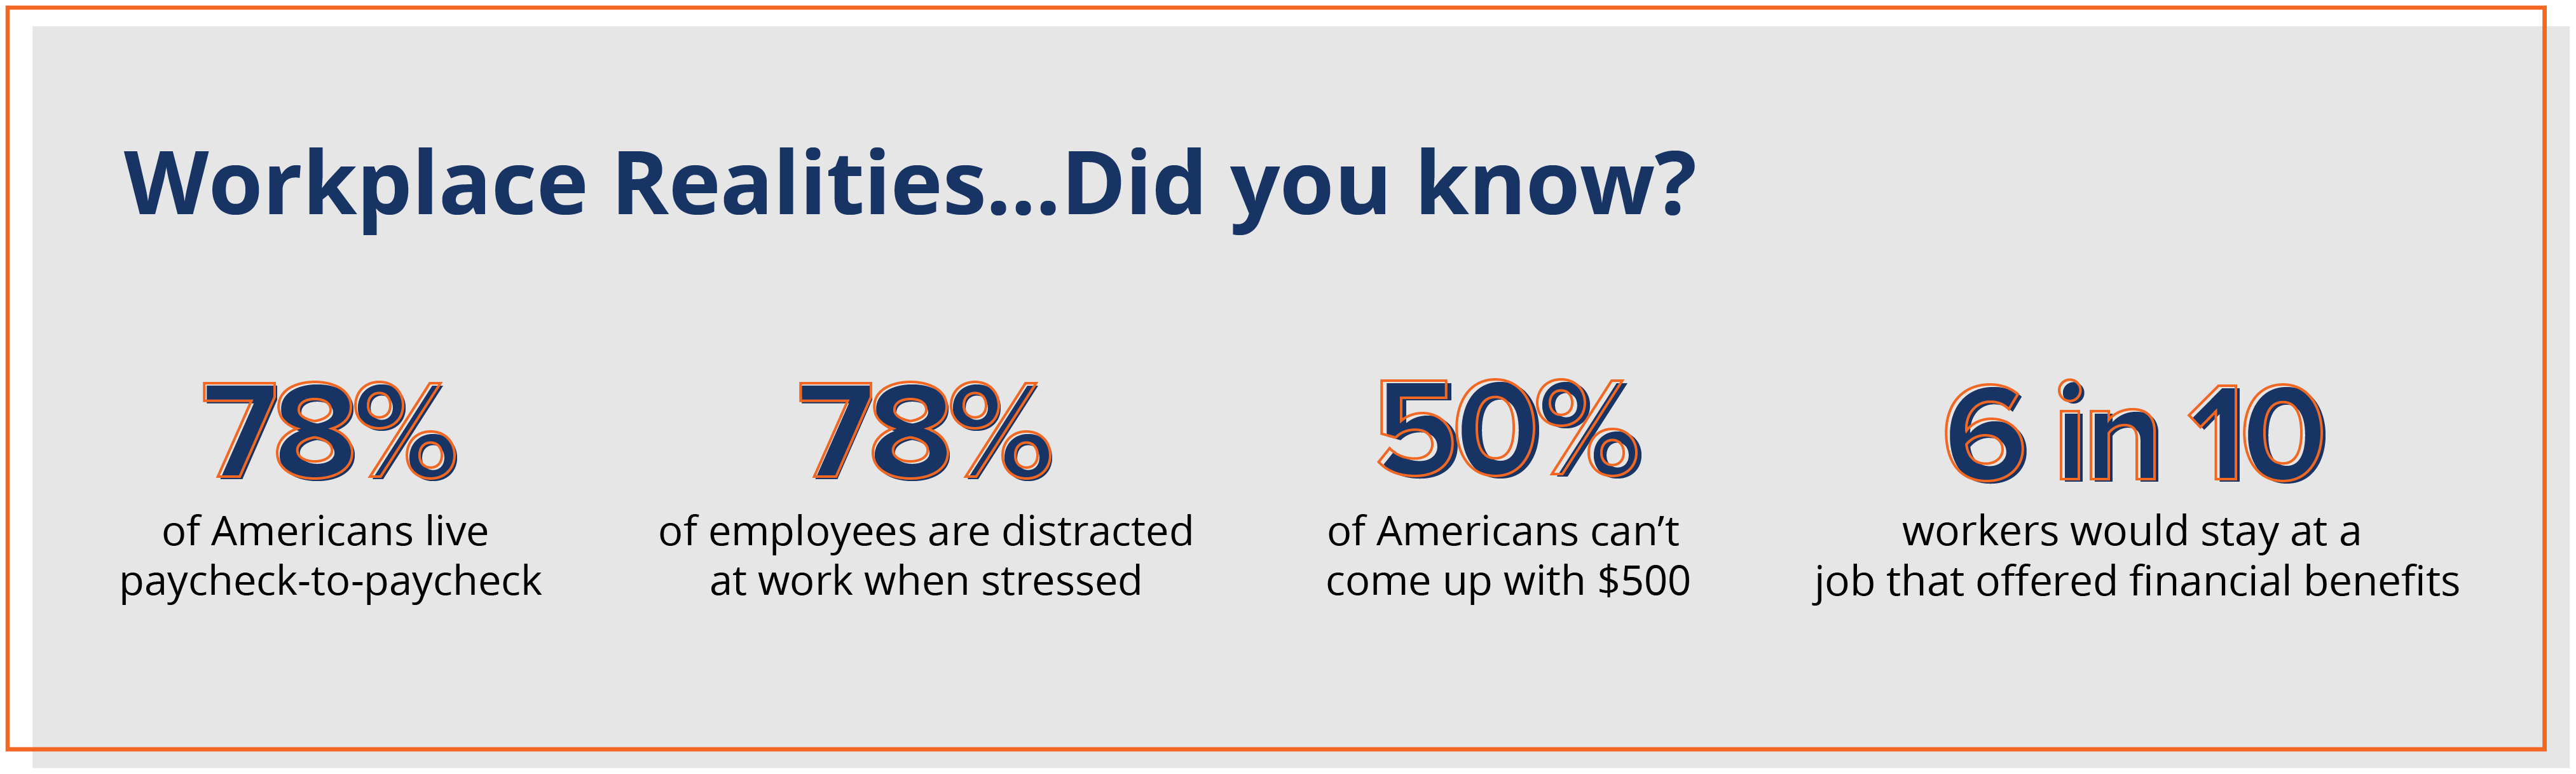 Workplace Realities...Did you know?